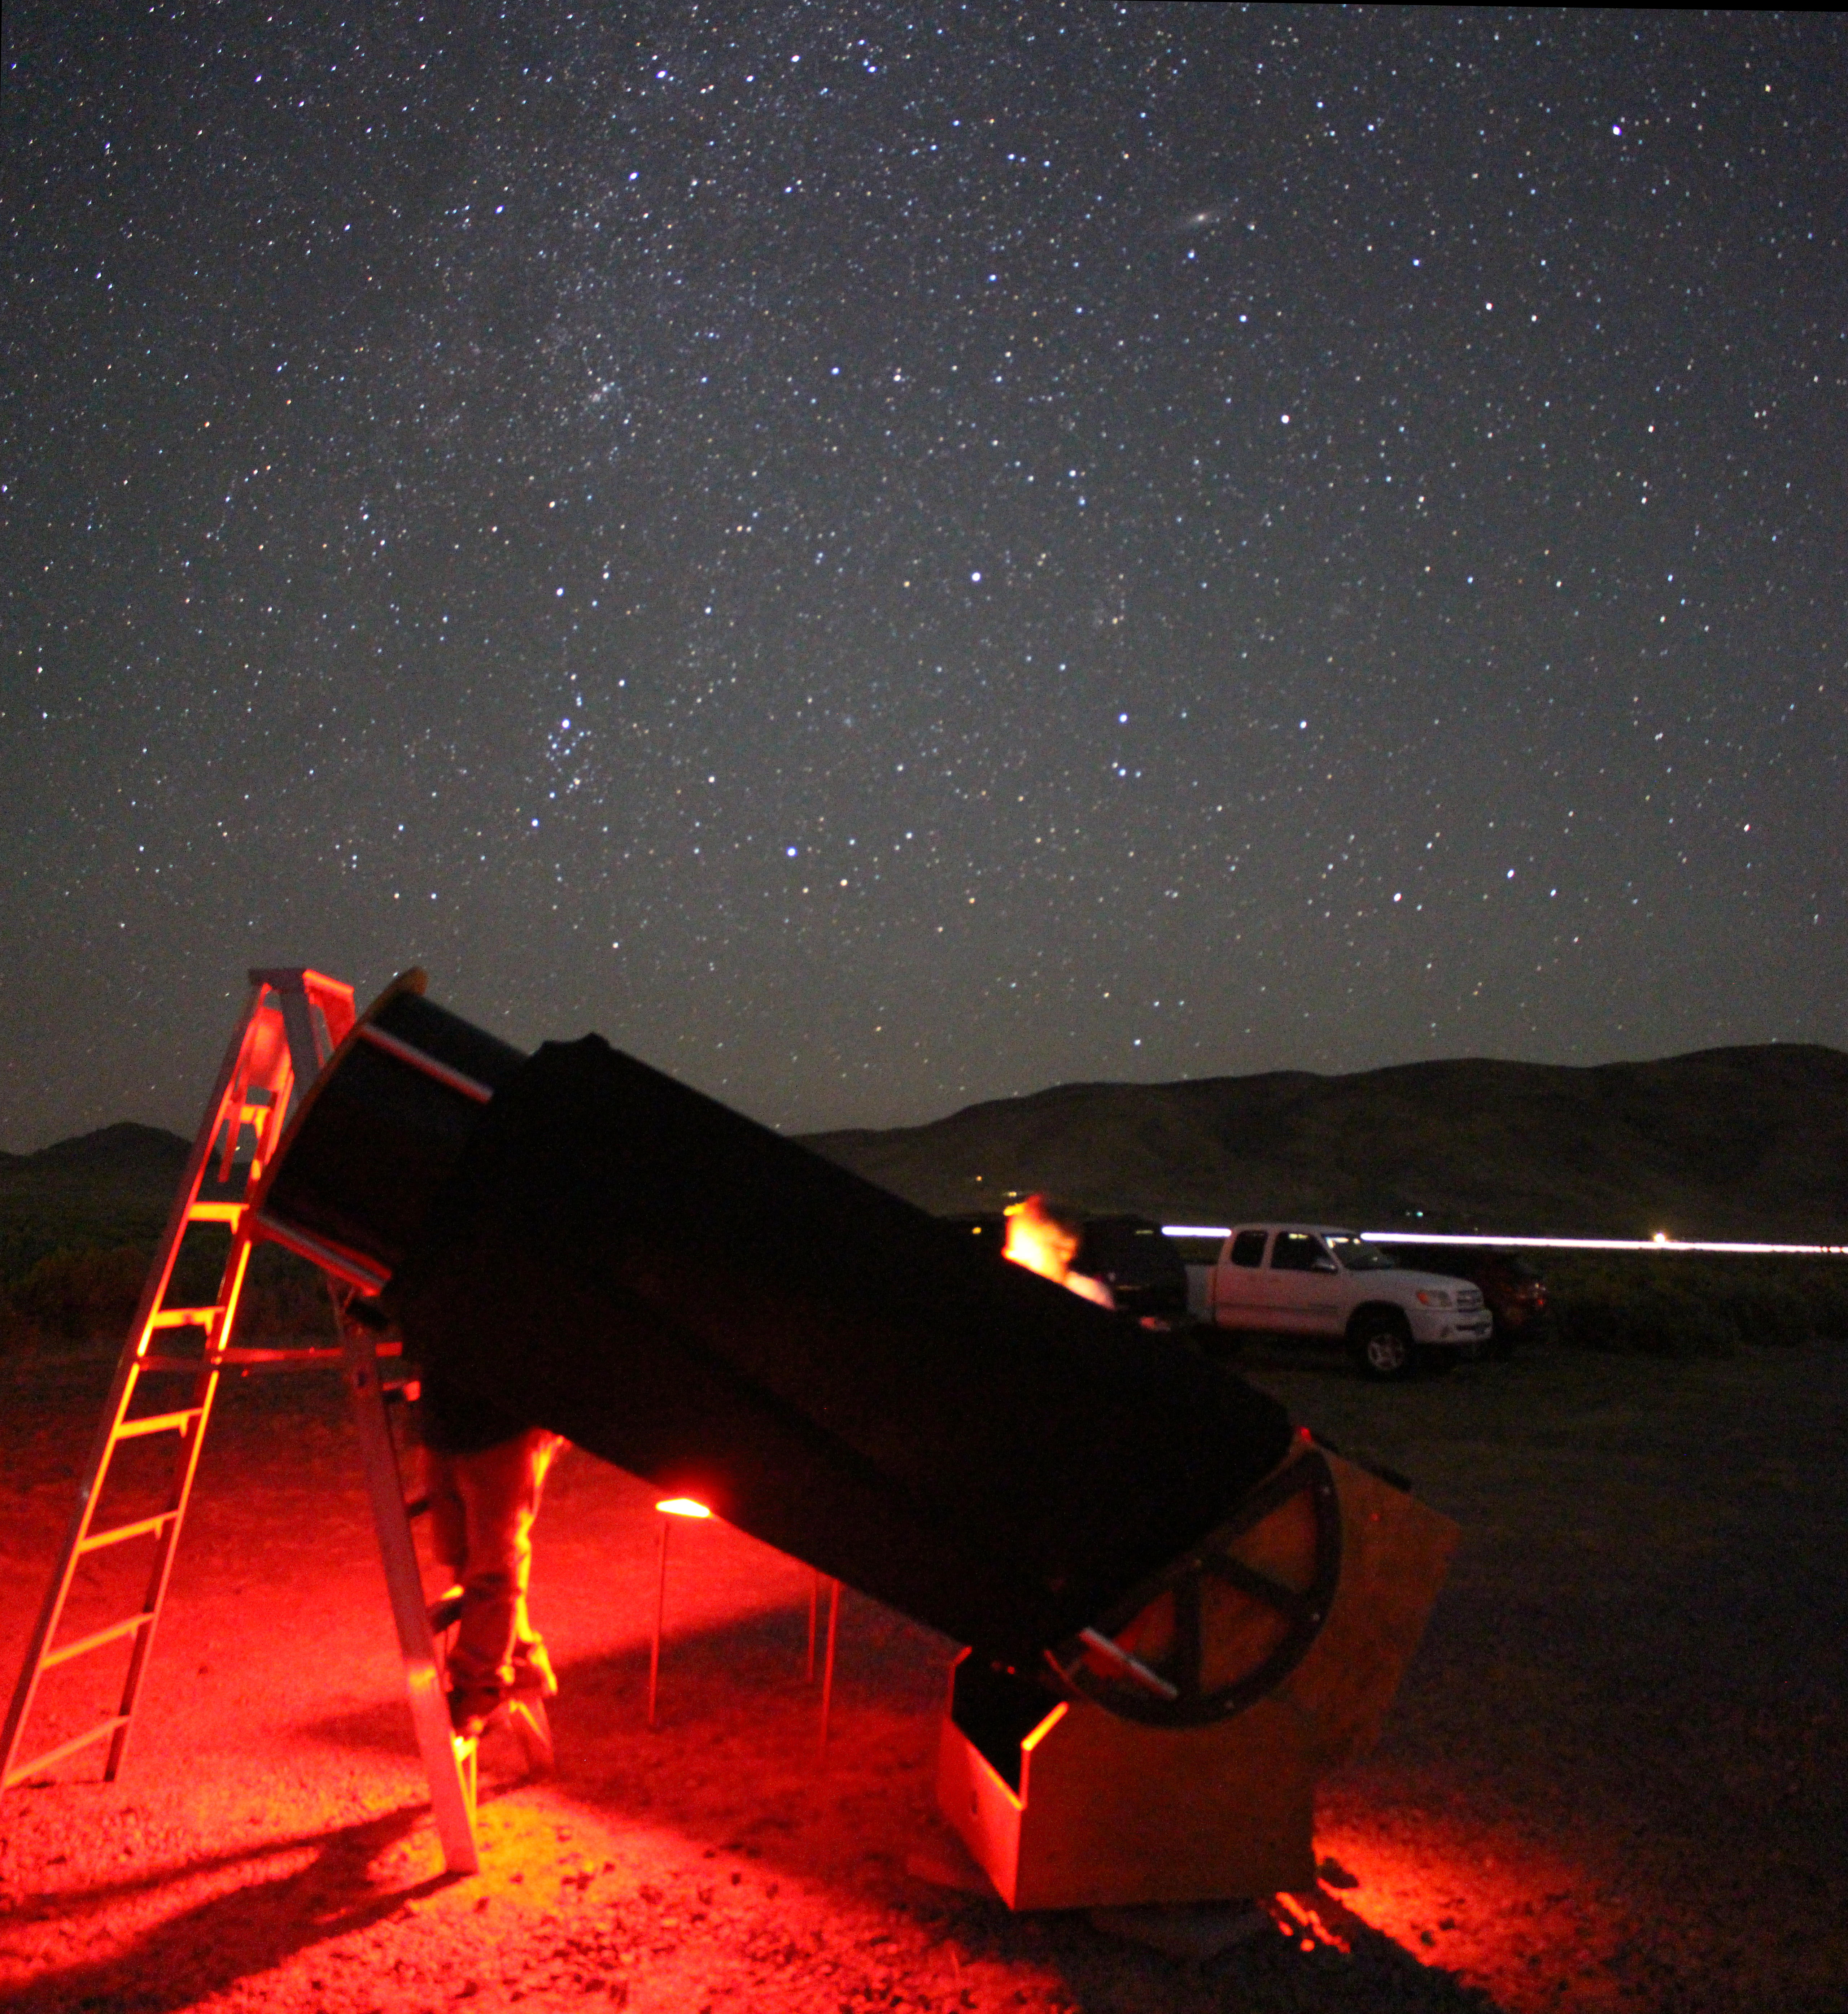 Images from ASN Star Party